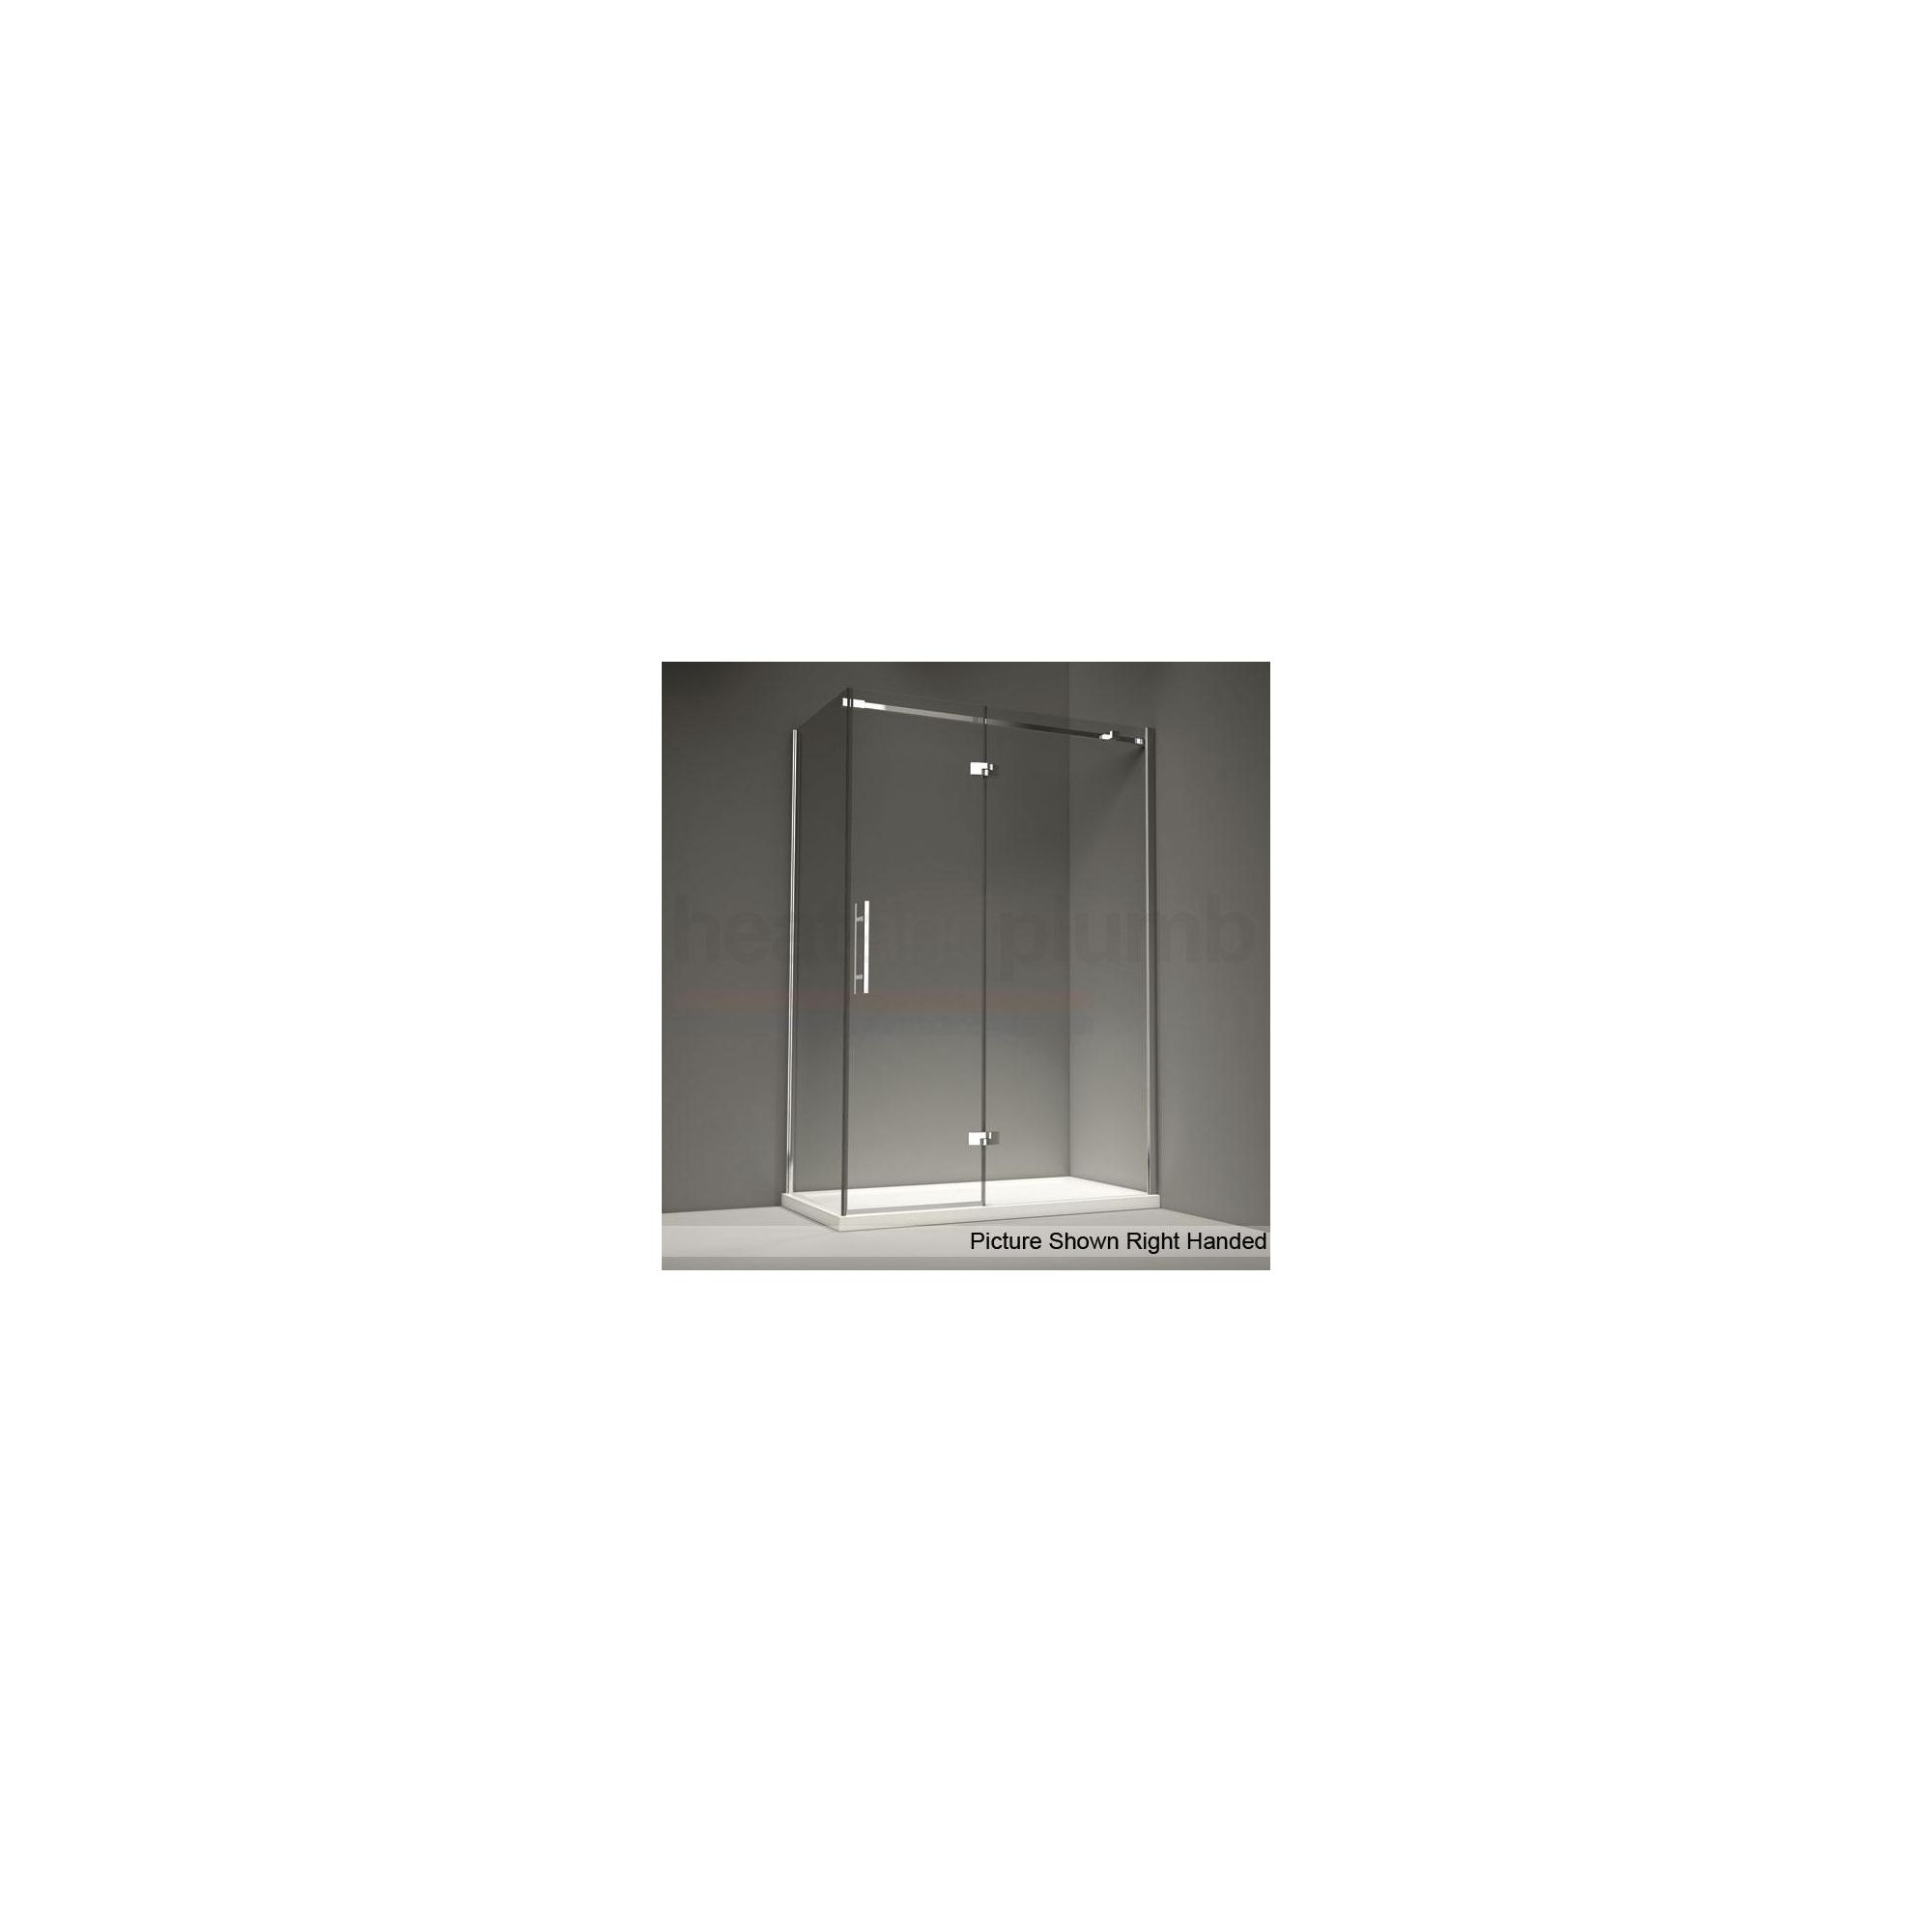 Merlyn Series 9 Inline Hinged Door Shower Enclosure, 1200mm x 800mm, Low Profile Tray, 8mm Glass at Tesco Direct